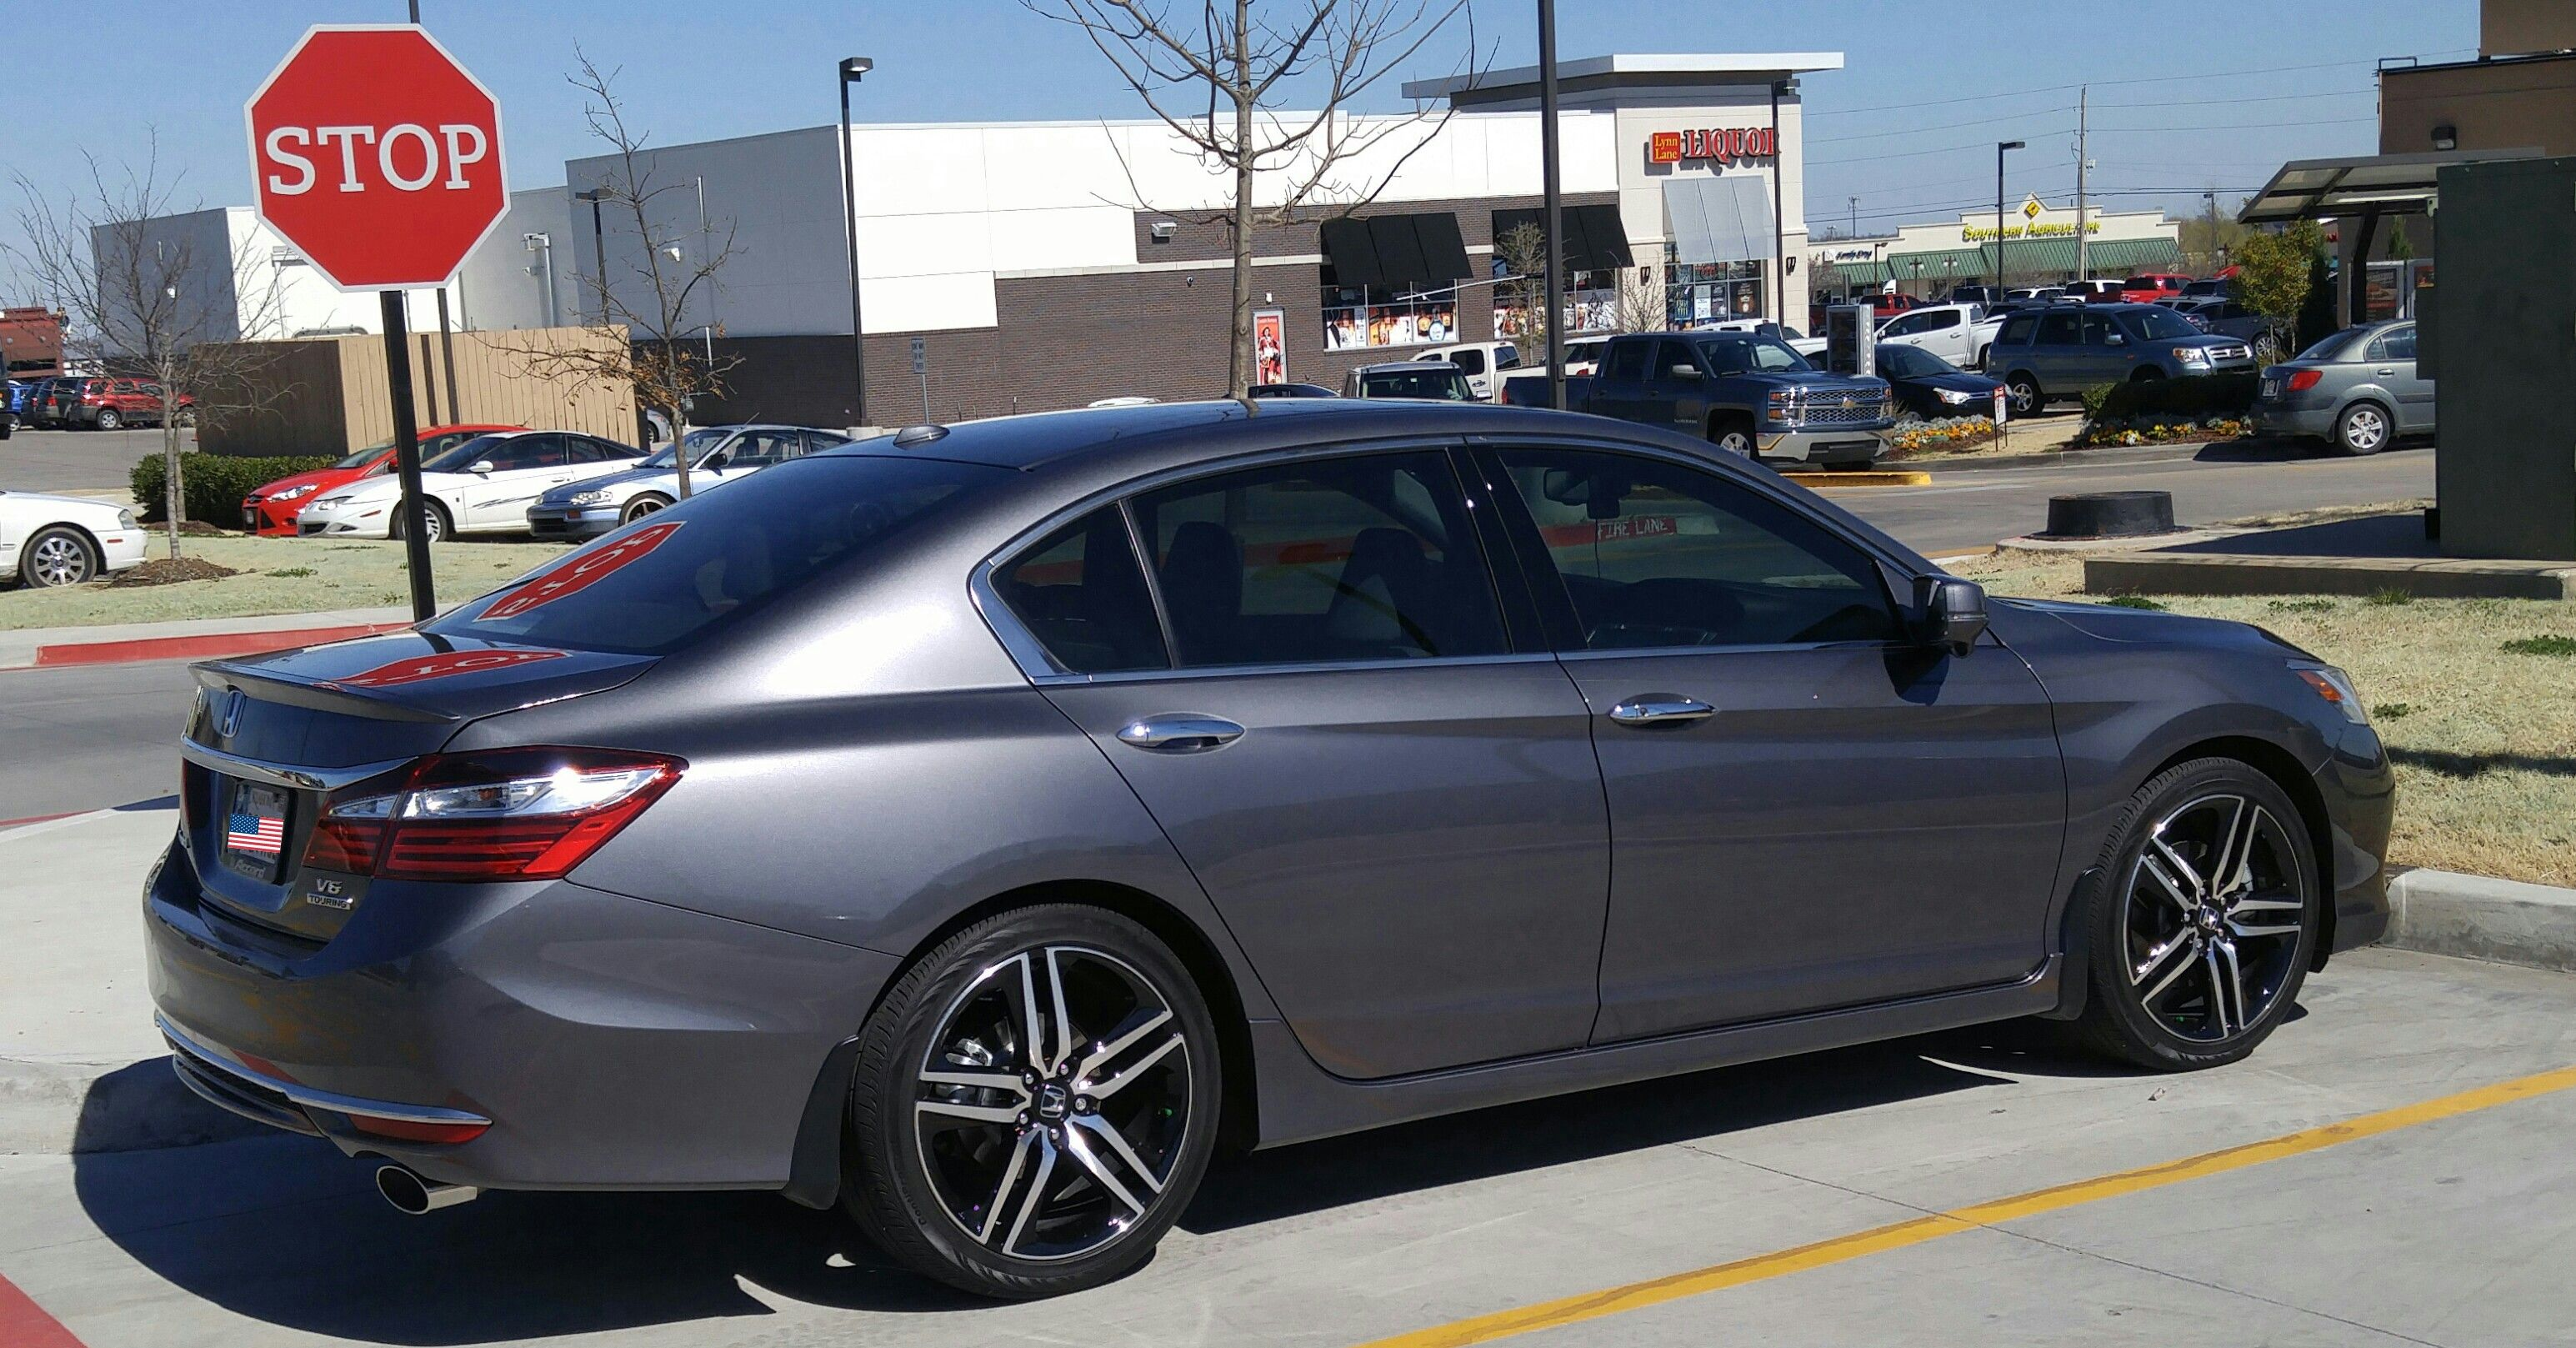 review comprehensive price hondaacura touring img honda accord